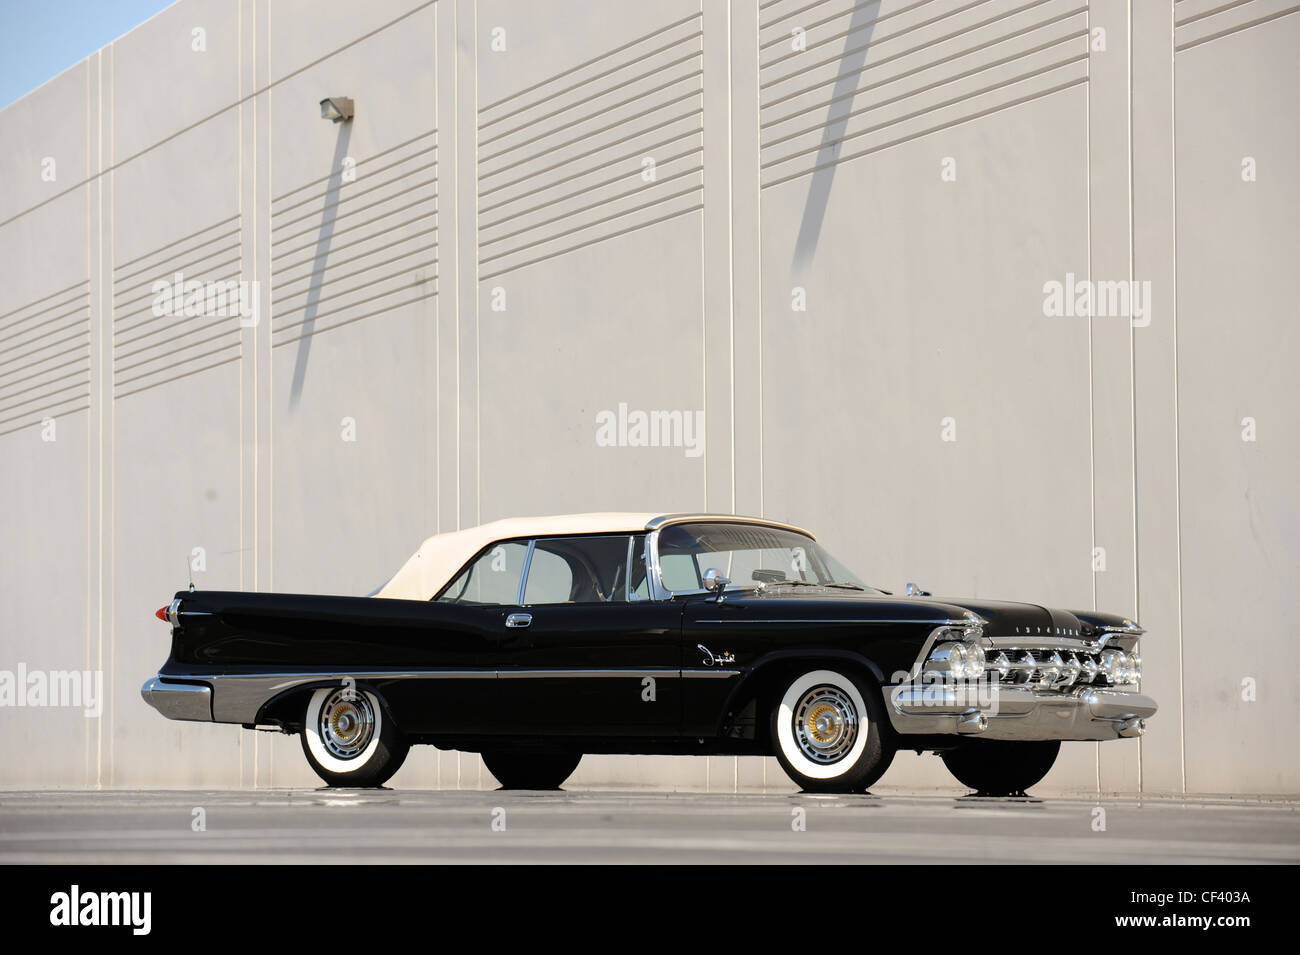 1950s Car Chrysler Stock Photos Images Cars 1959 Imperial Convertible Image